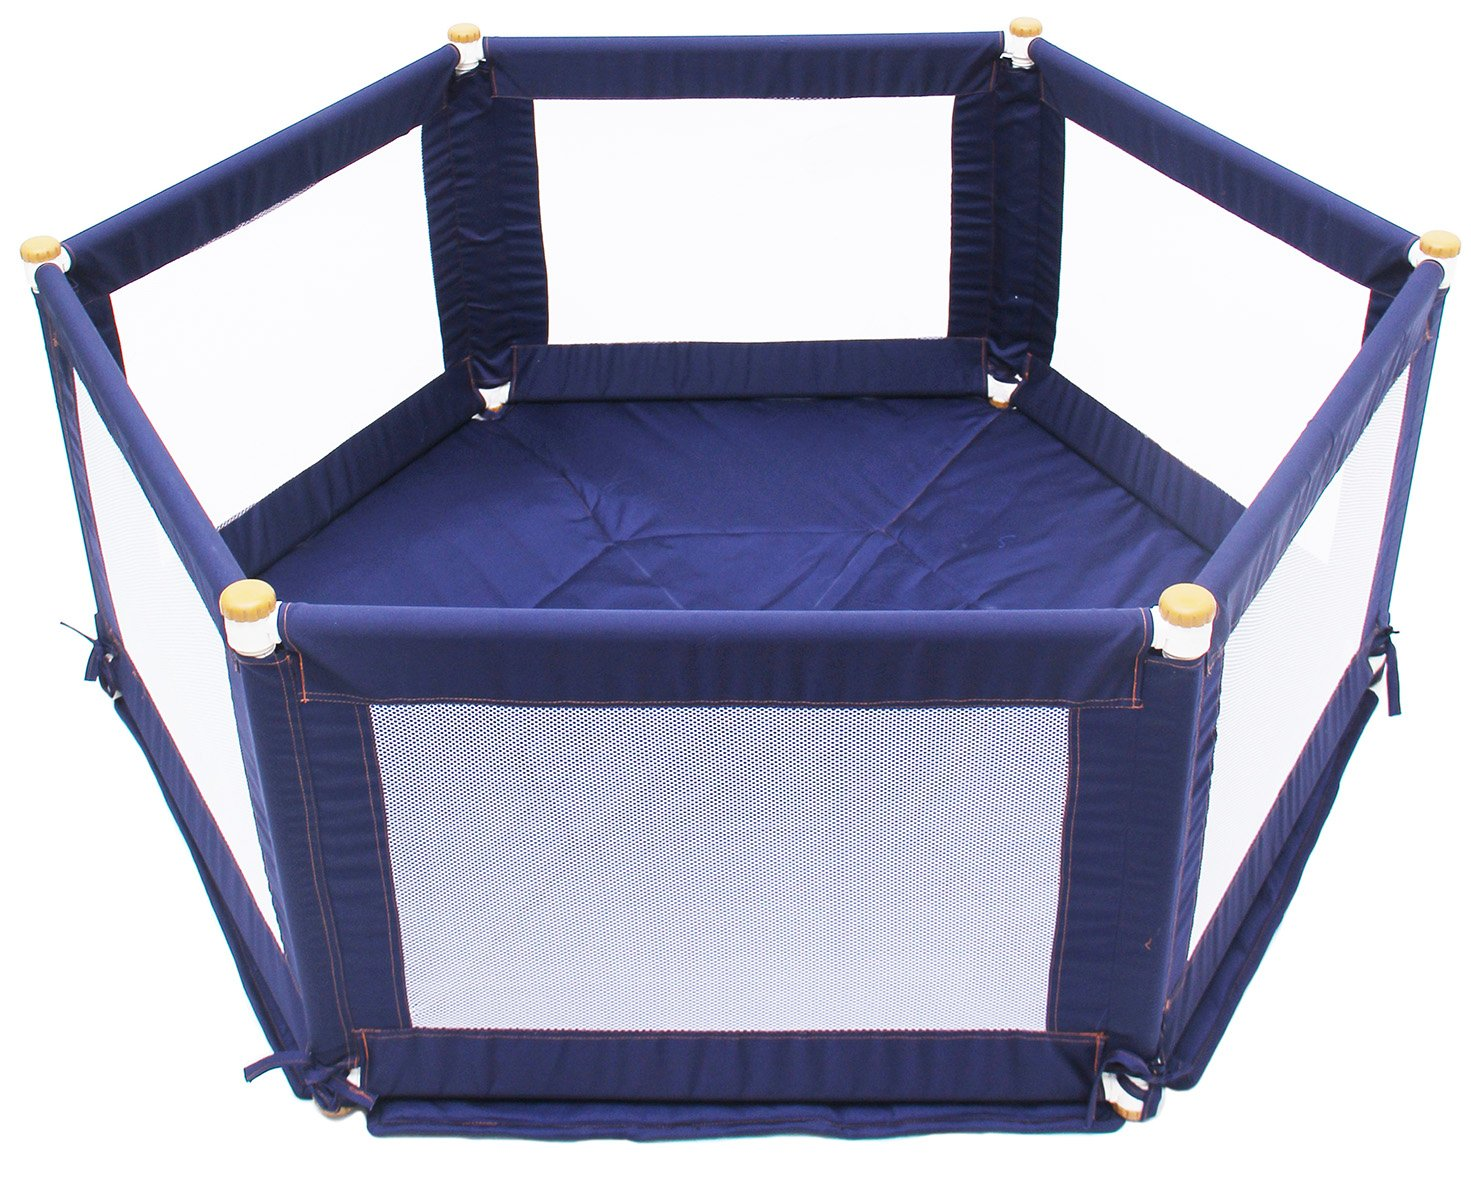 TikkTokk Pokano Fabric Playpen/Mat (Hexagonal, Blue) TikkTokk Fabric Baby Playpen - keep baby safe & secure whilst providing a large play area Crafted in beautiful, durable polycotton Thick padded, fitted floor mat 1